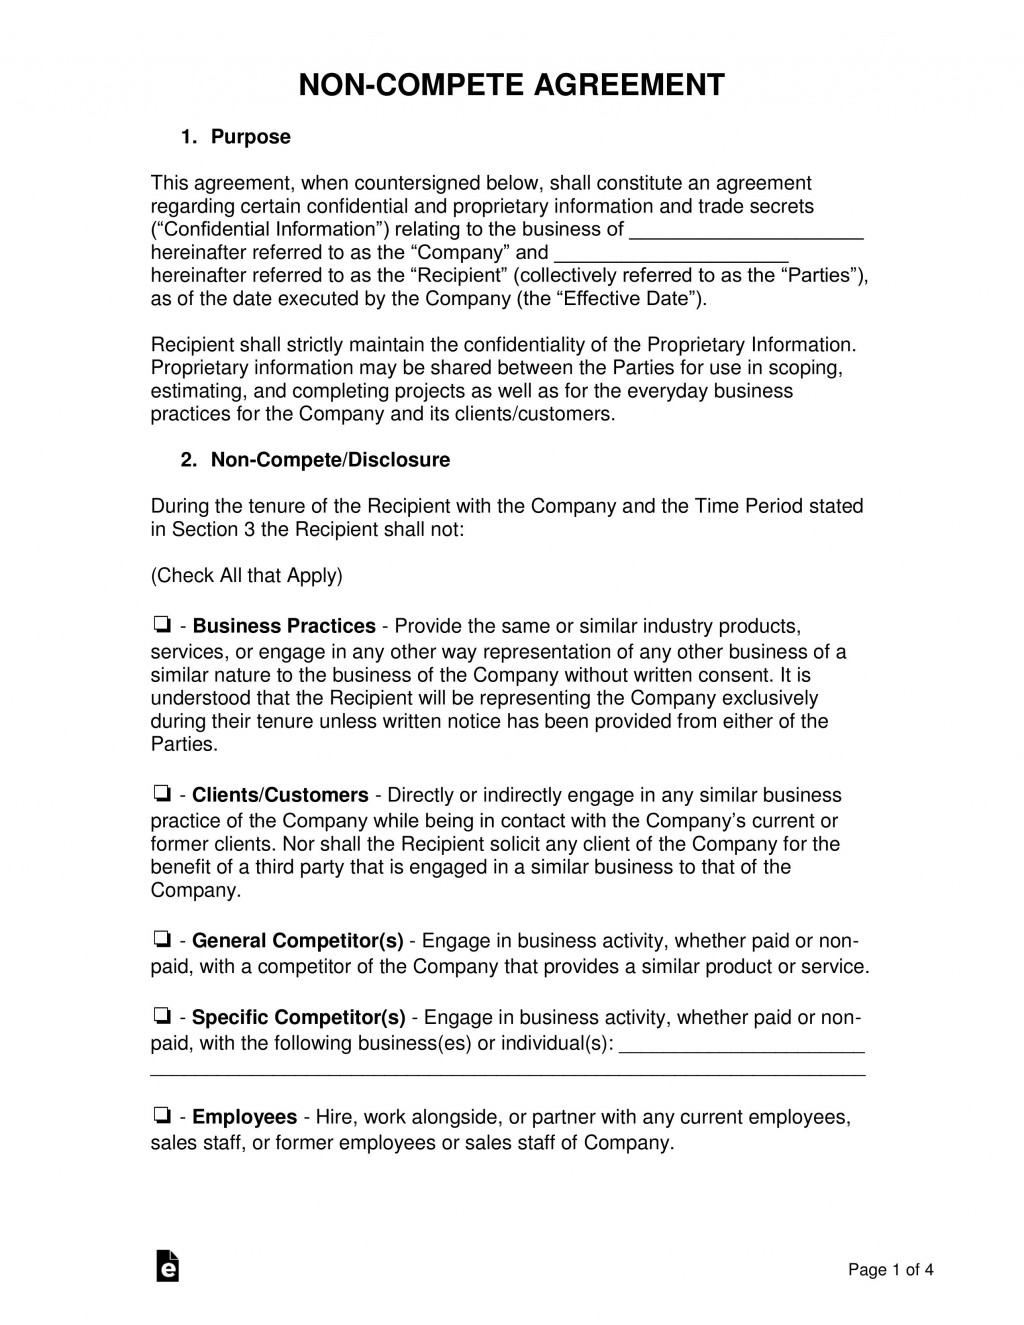 005 Magnificent Employee Non Compete Agreement Template Image  Free Confidentiality Non-compete DisclosureLarge